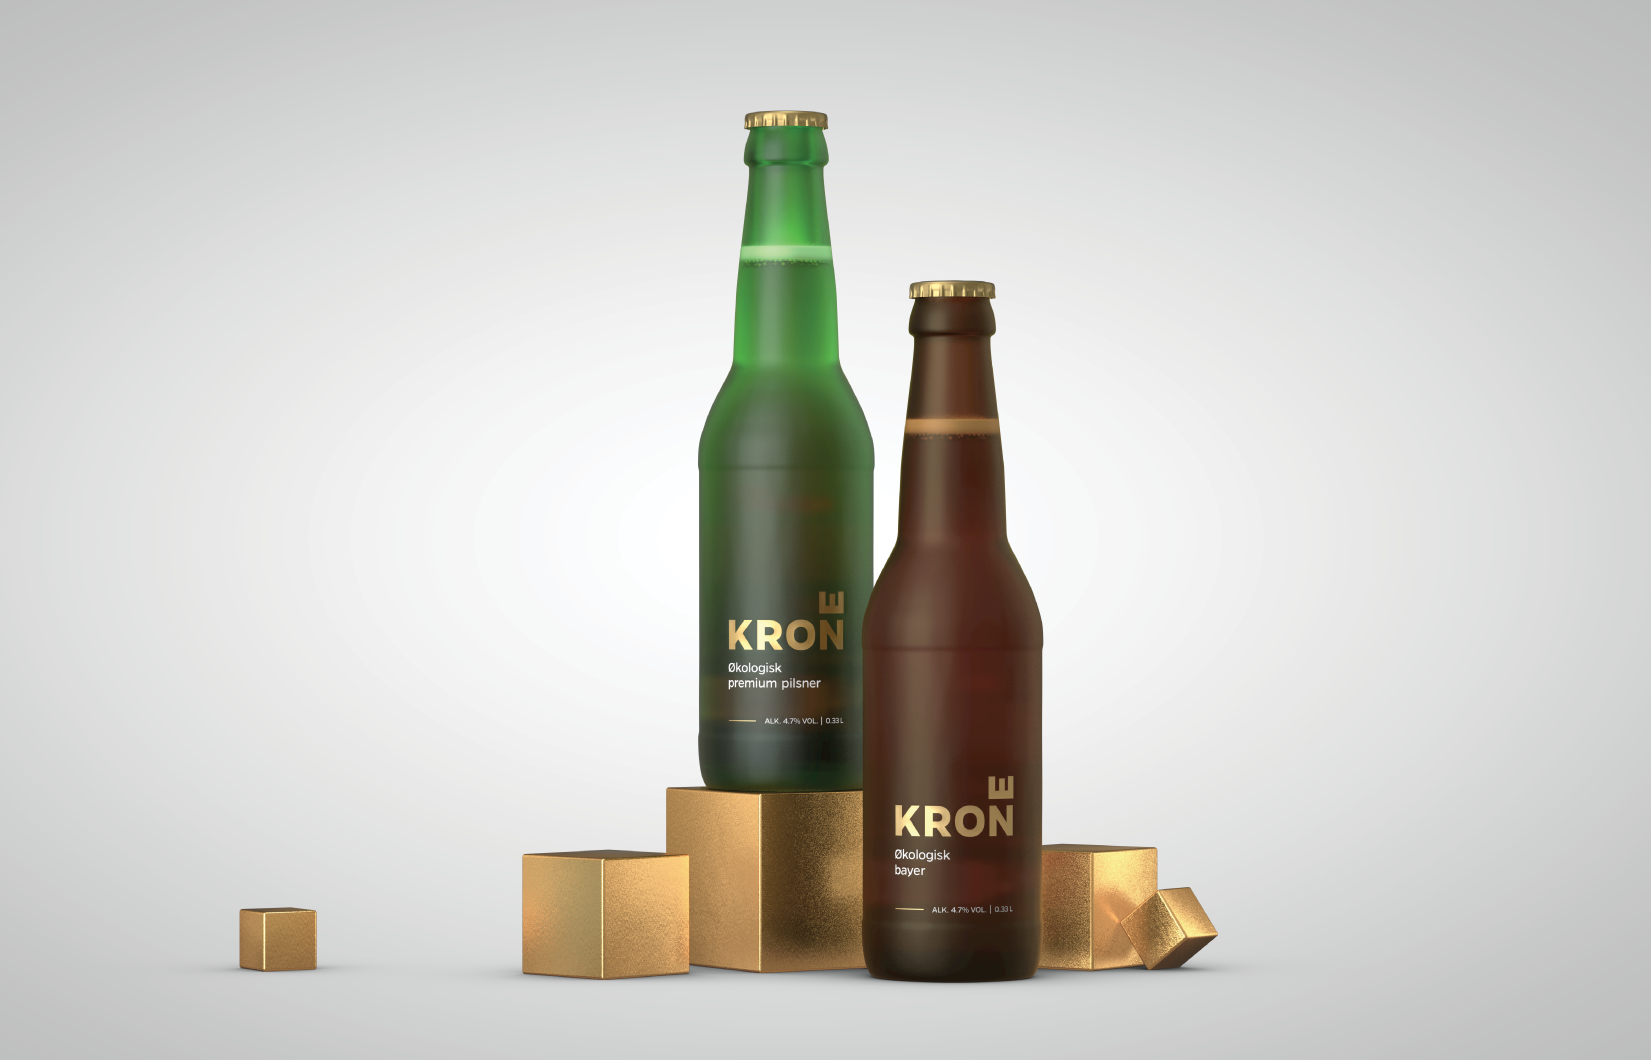 Kron beer bottle design